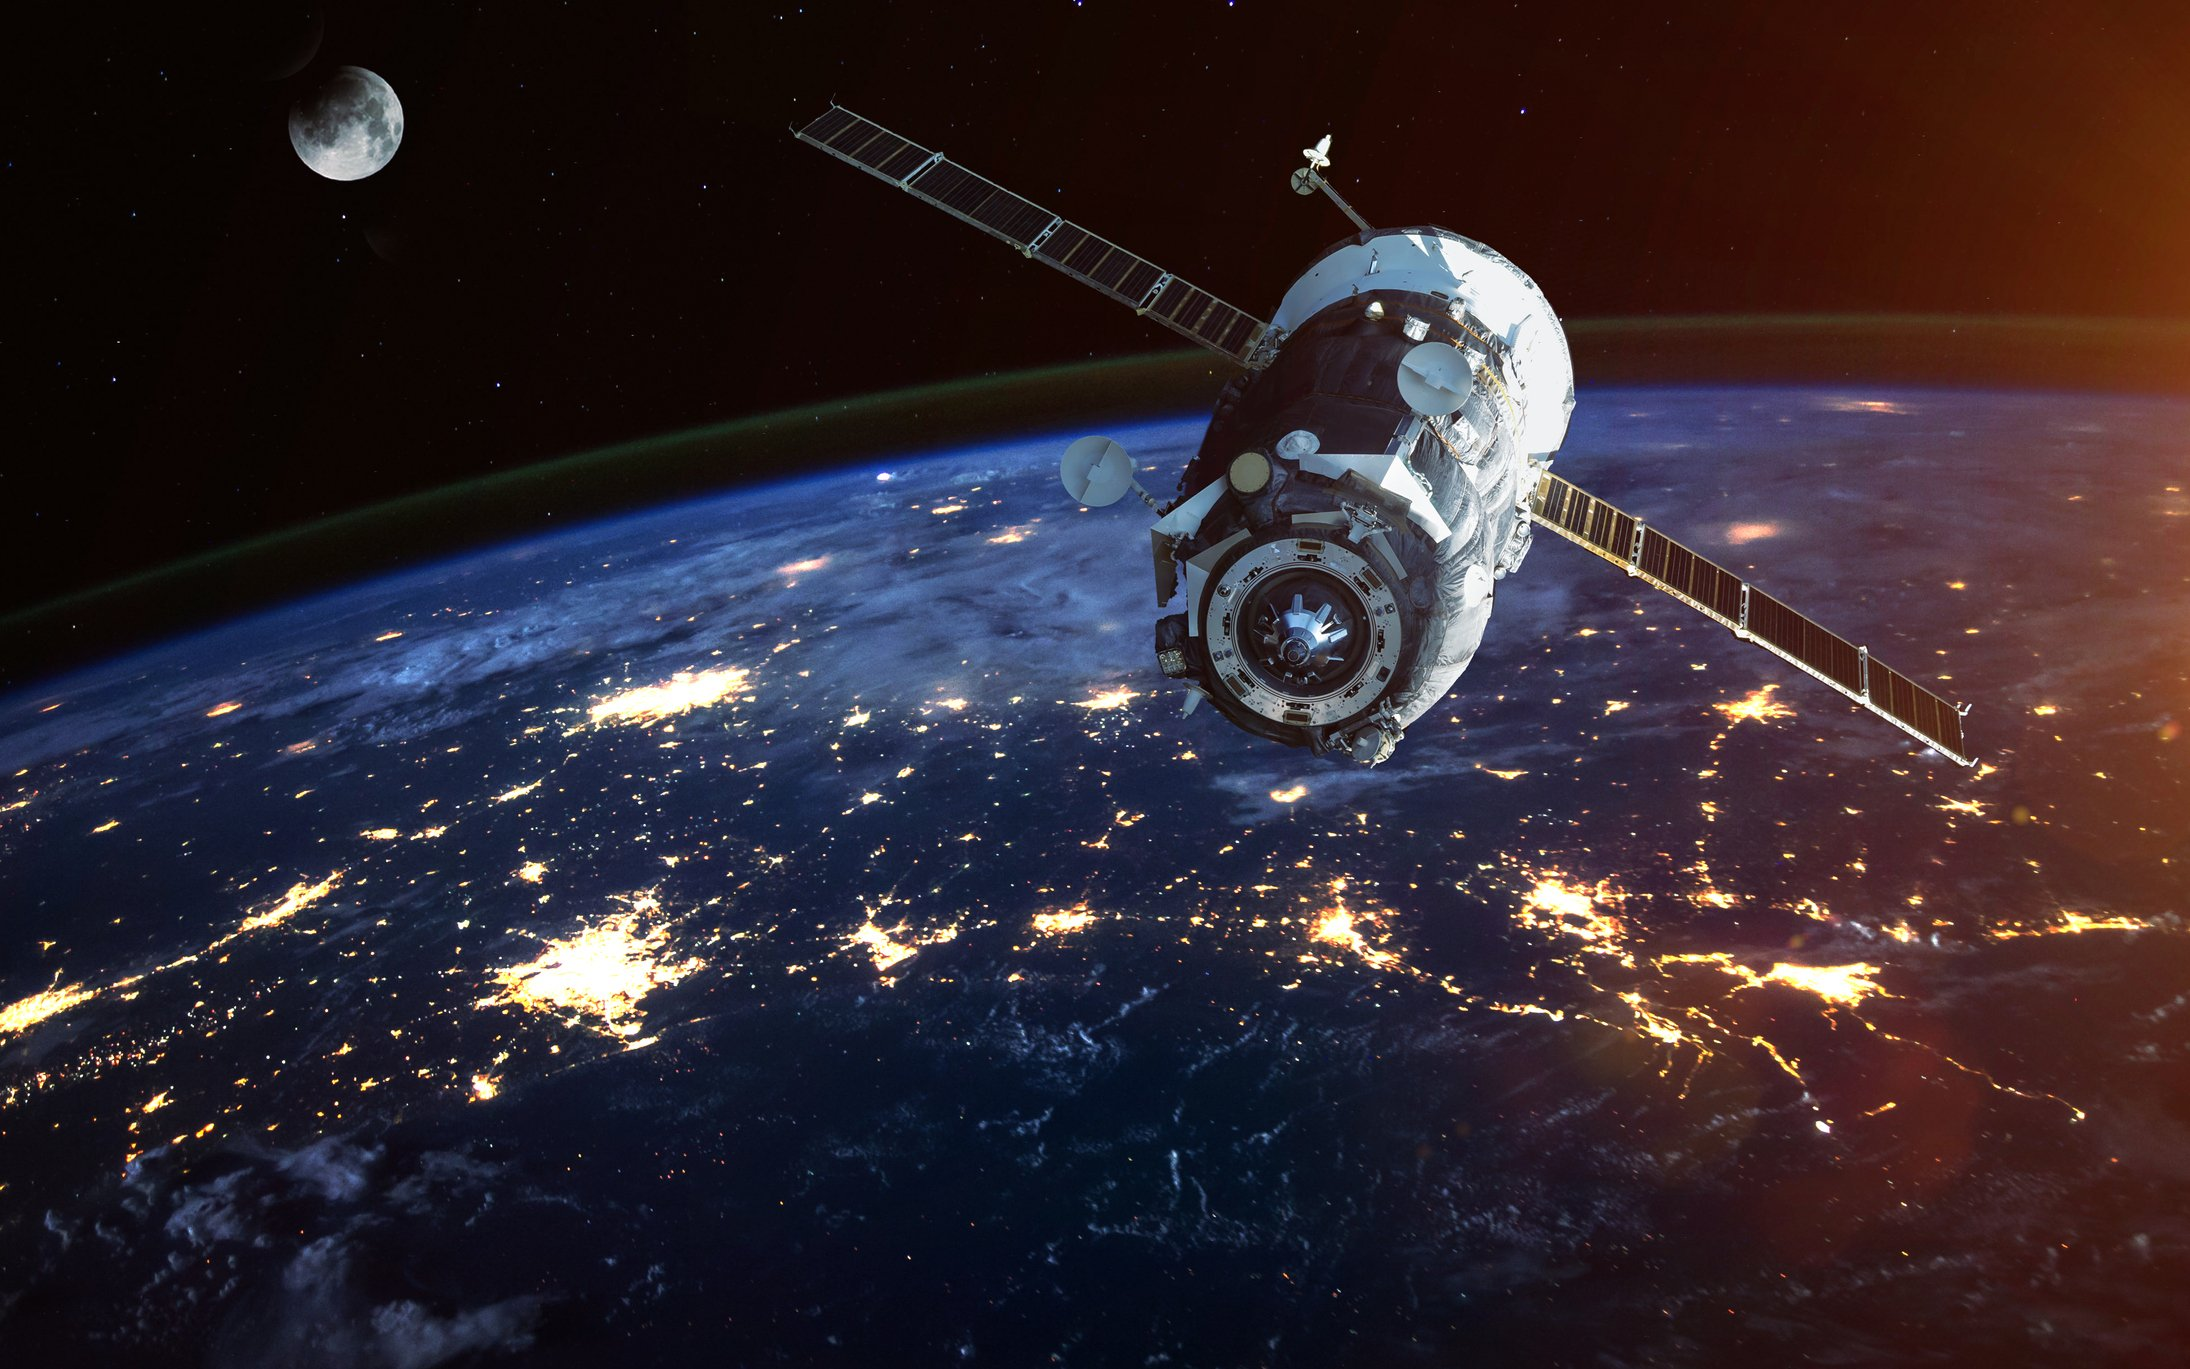 A company launched four satellites without telling anyone and now the government is mad